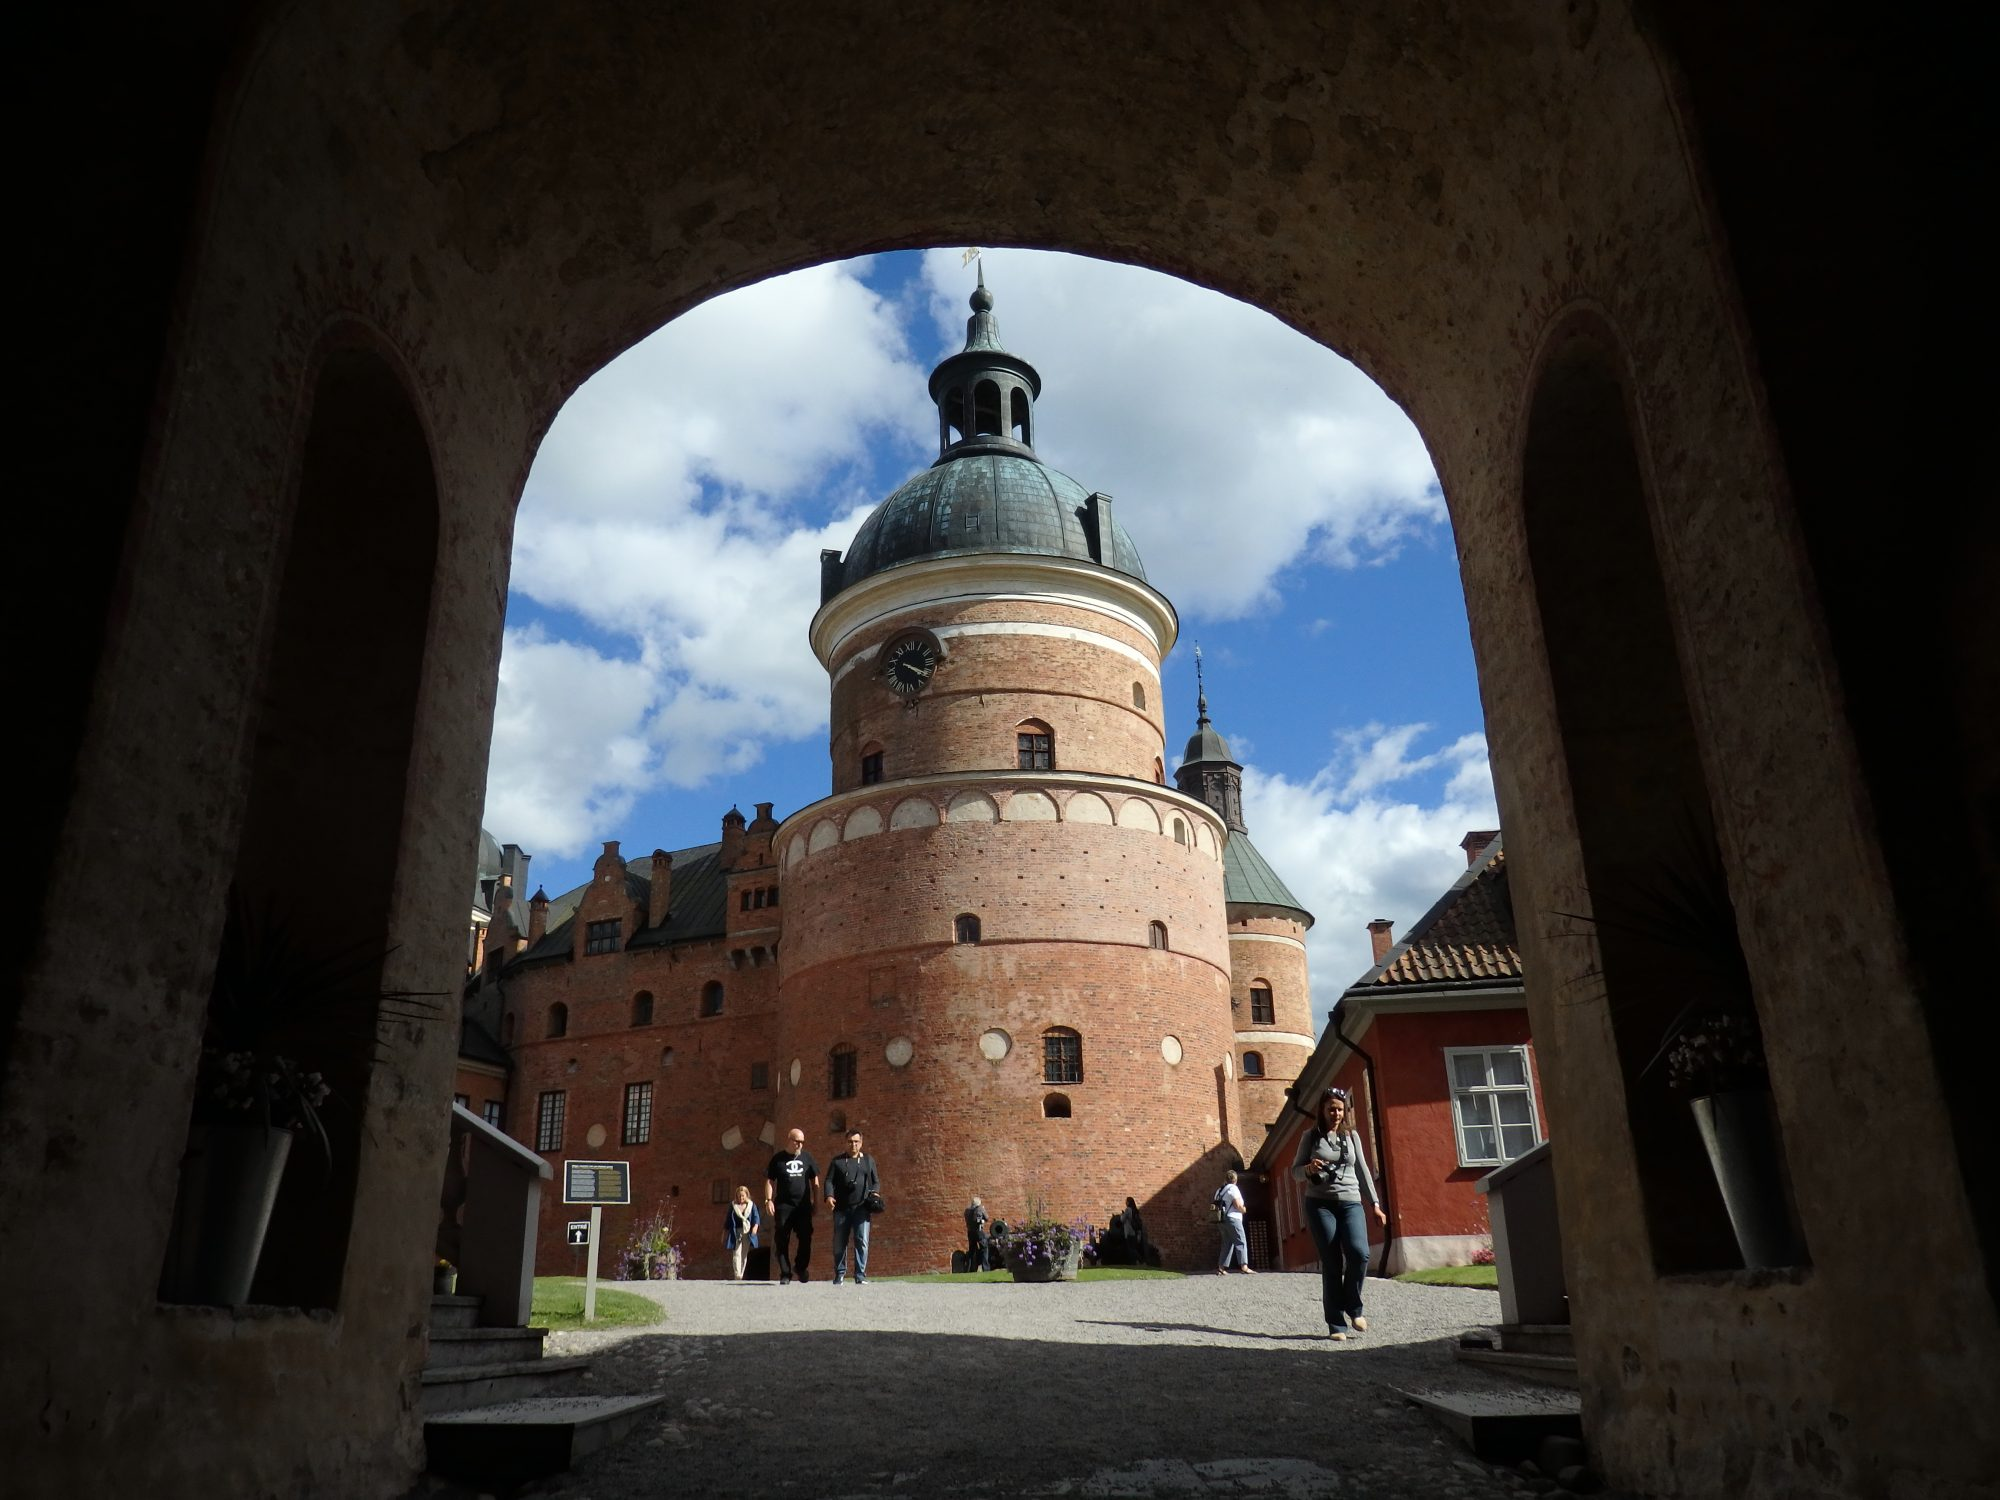 inside the entrance to Gripsholm Castle, Mariefred, Sweden